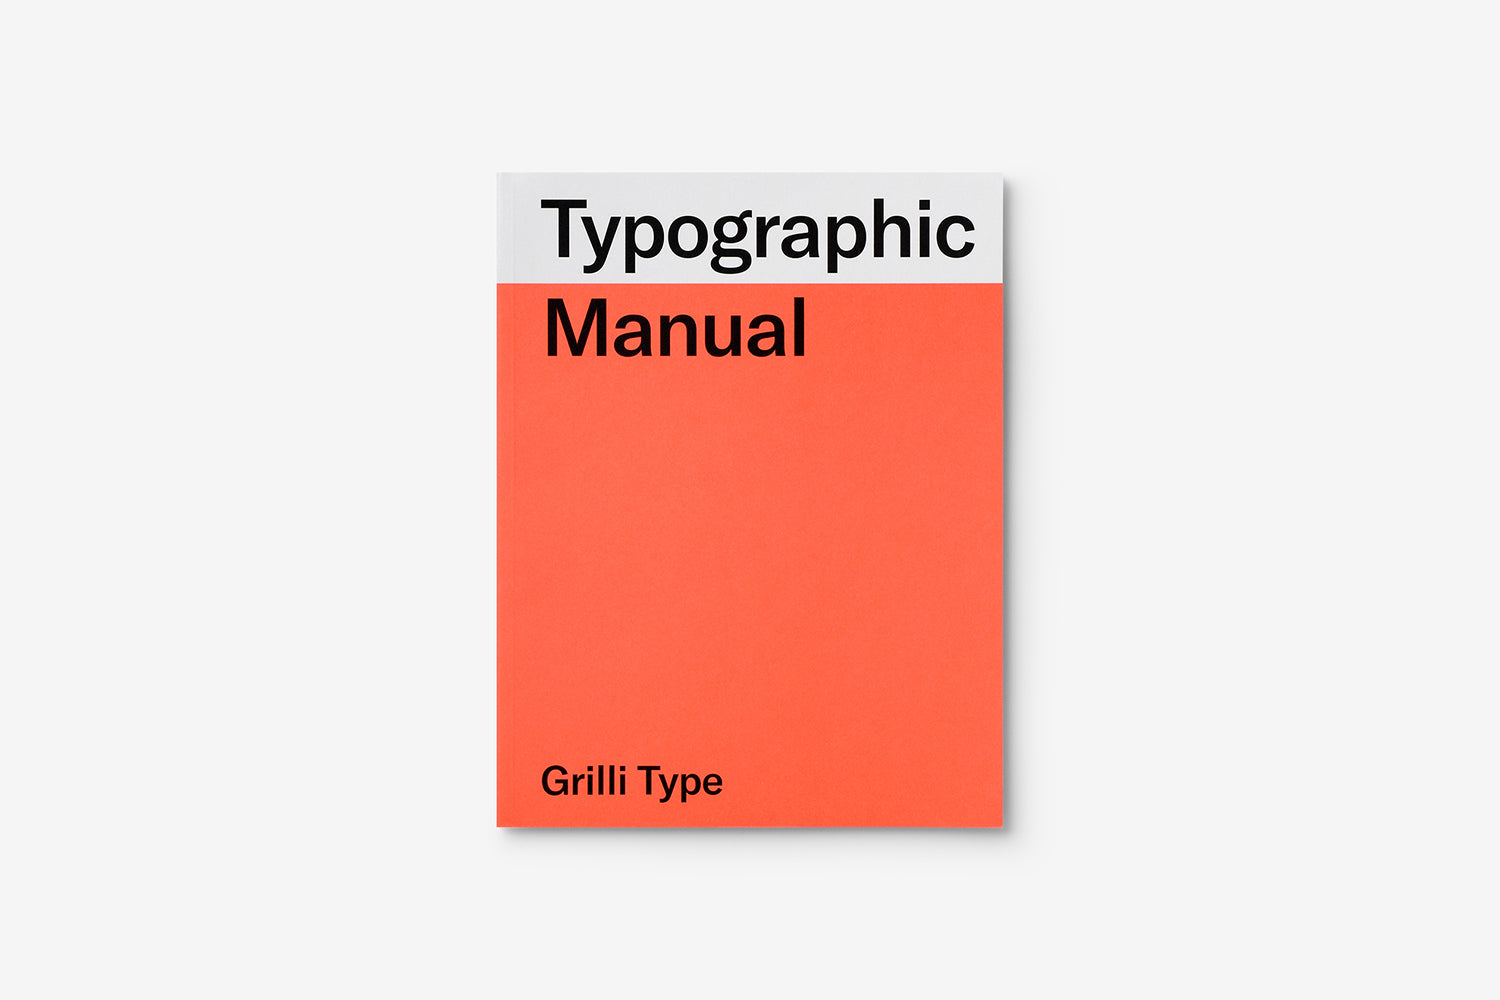 Typographic Manual by Grilli Type